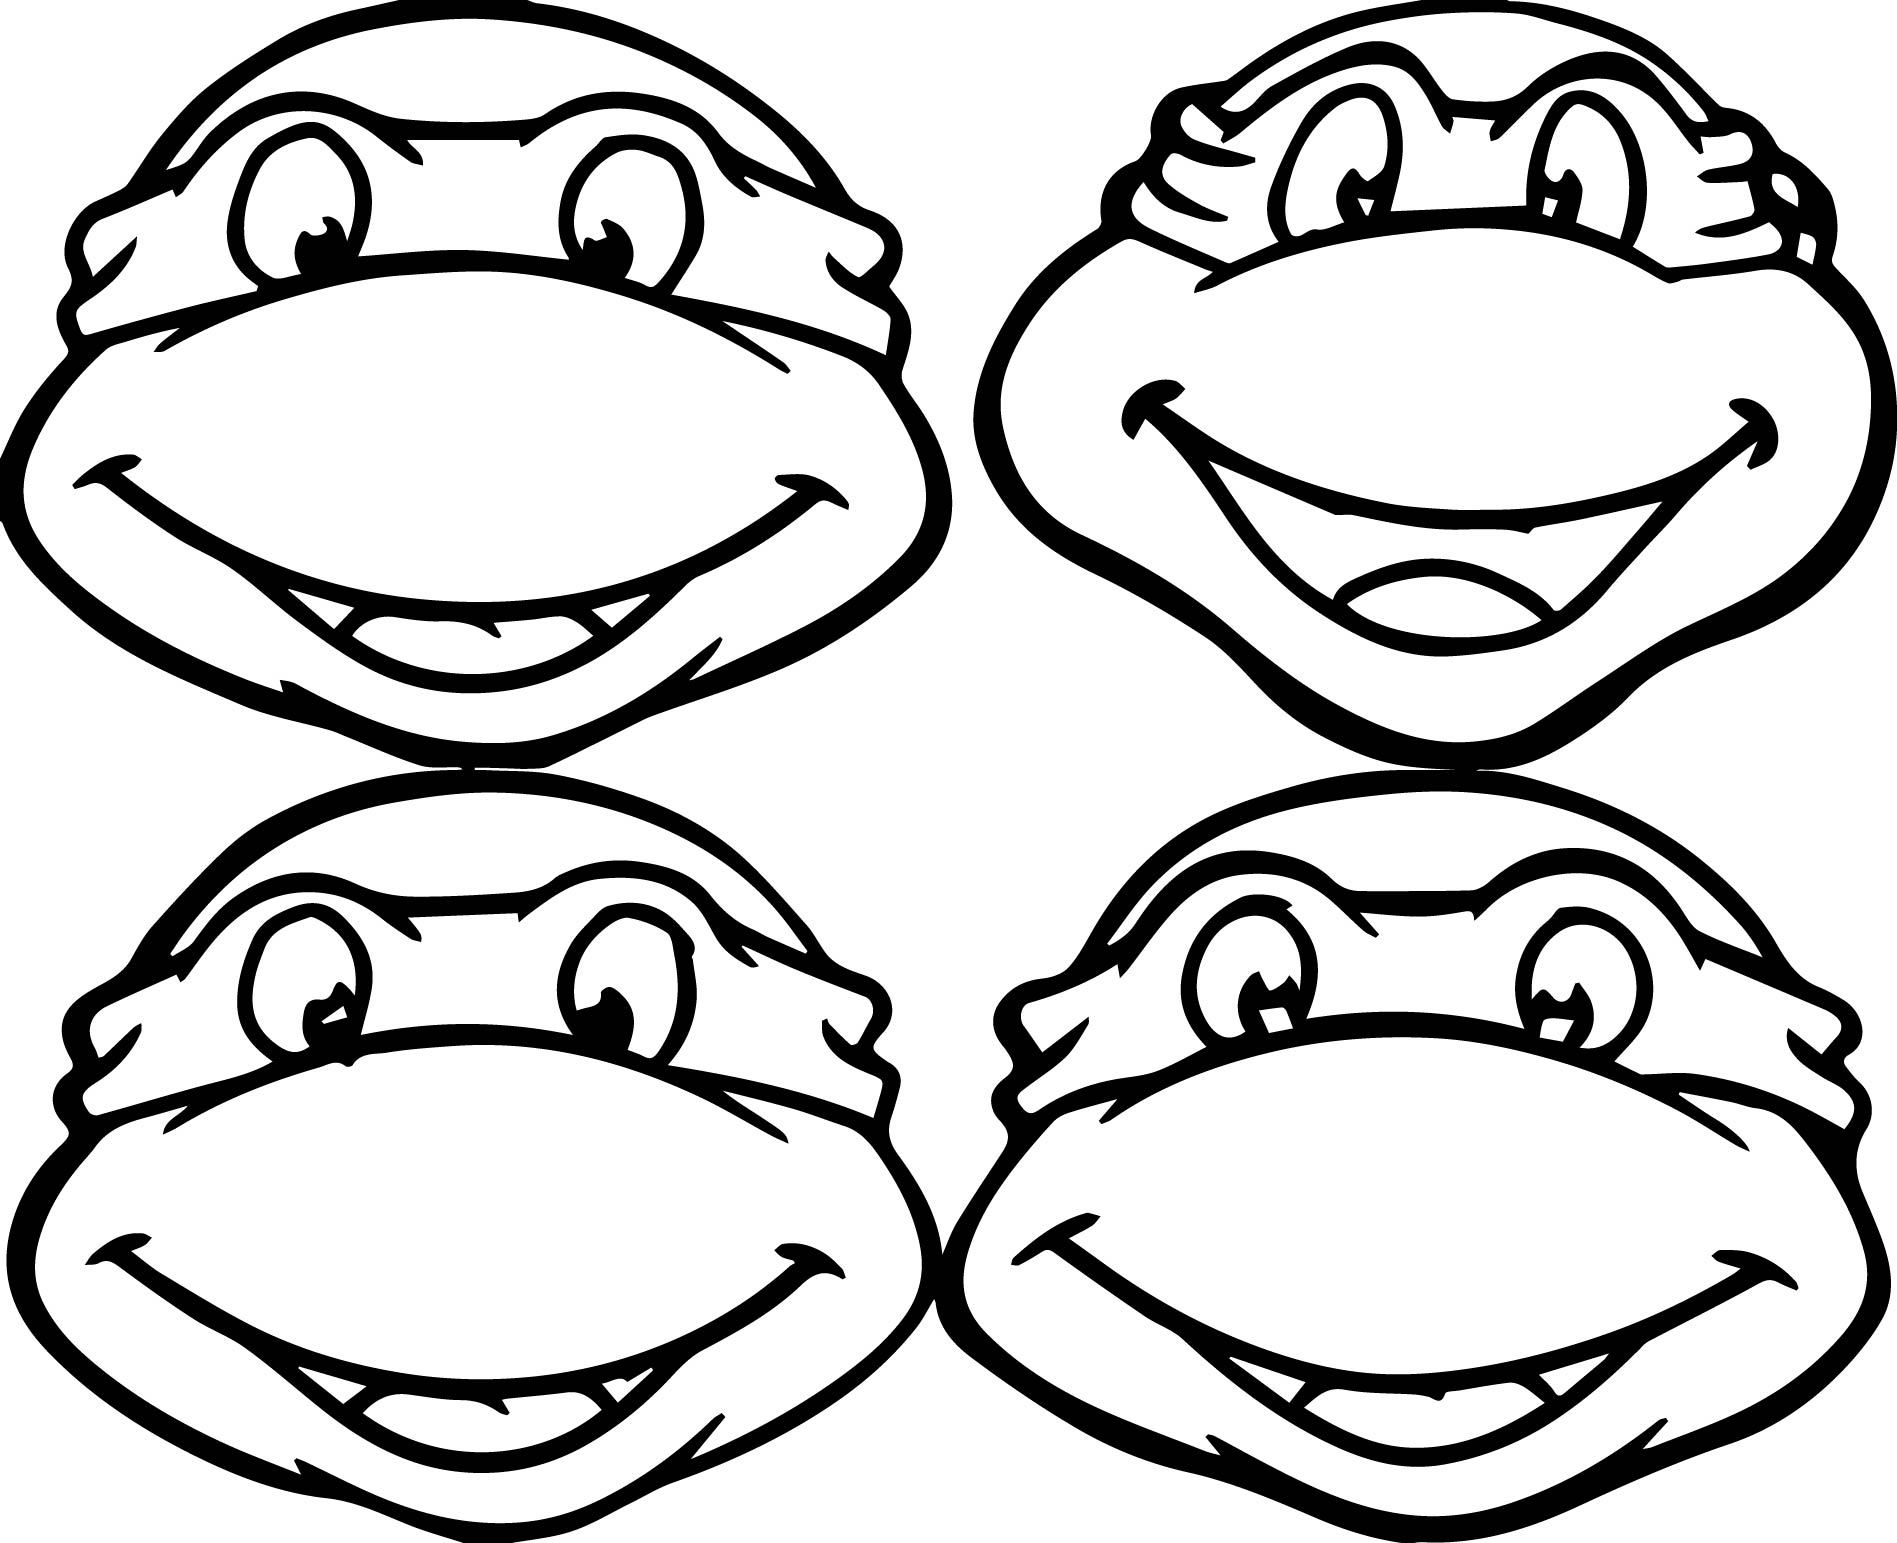 Teenage Ninja Turtle Coloring Pages Download 5b - Save it to your computer